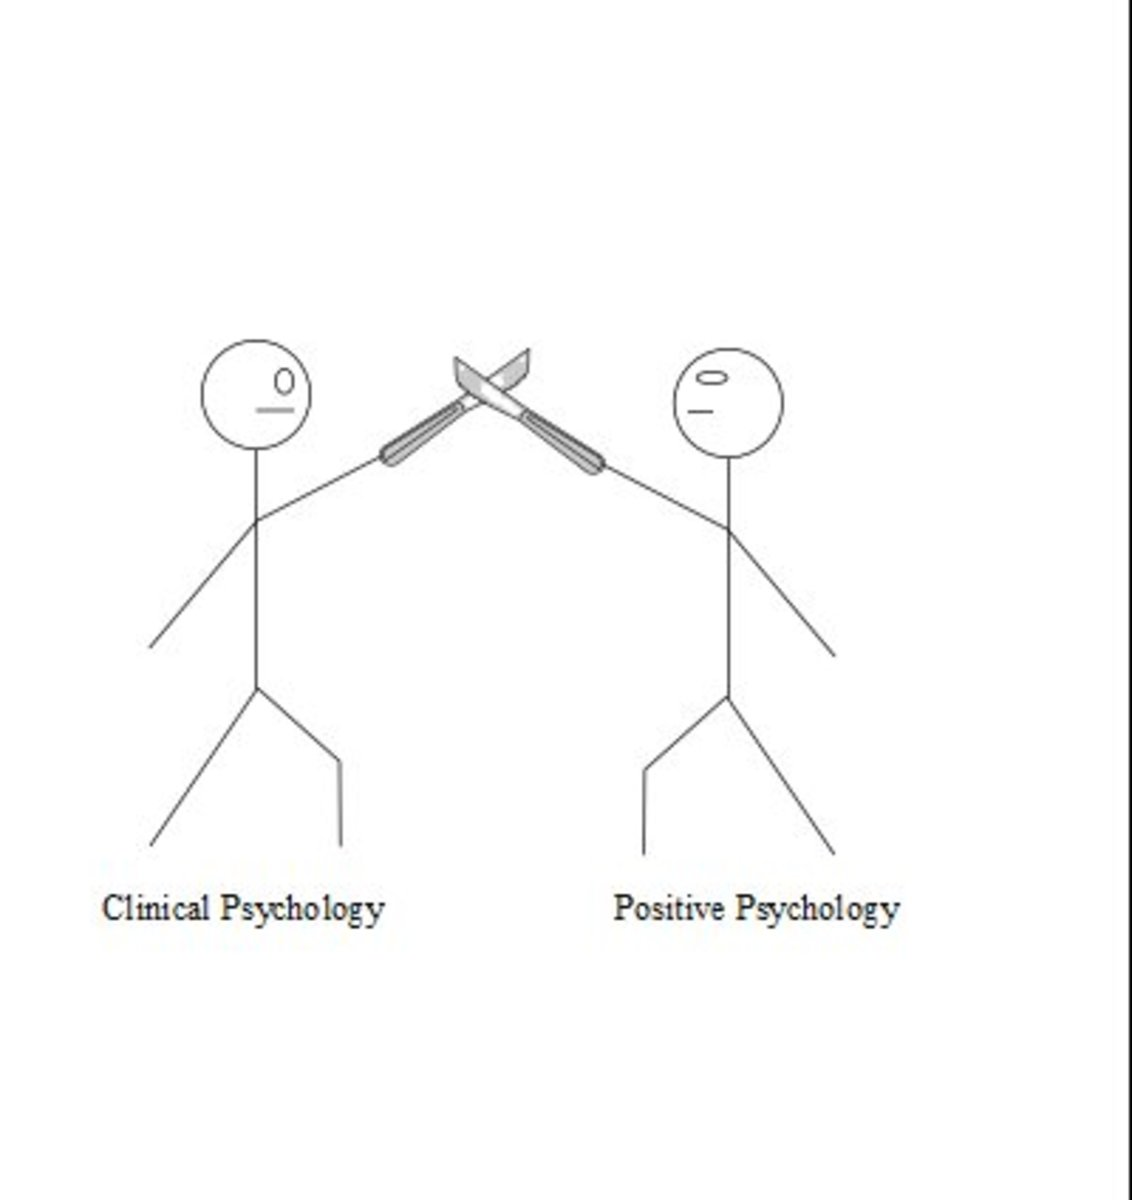 Is Positive Psychology different from Clinical Psychology?